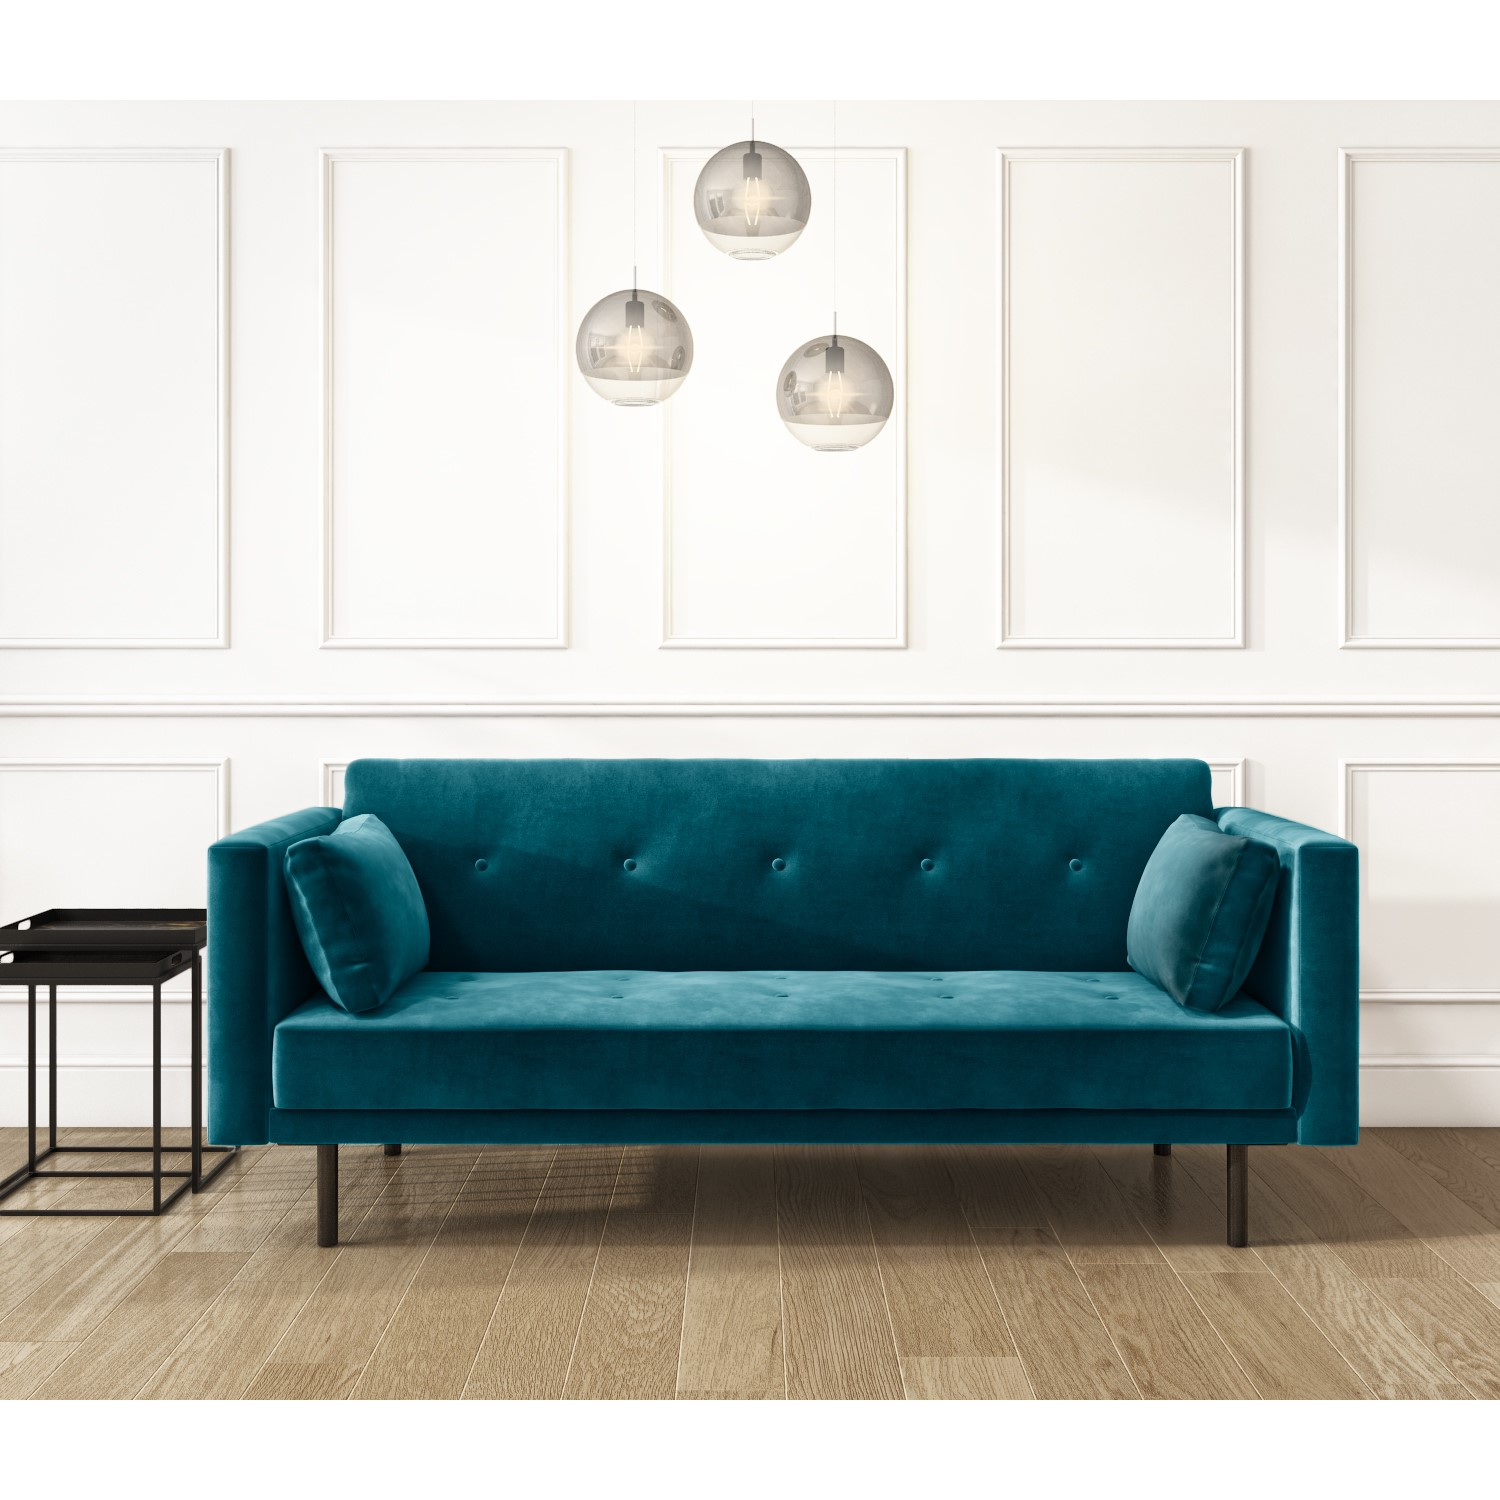 Velvet Sofa Bed in Teal Blue with Buttons - Seats 9 - Rory